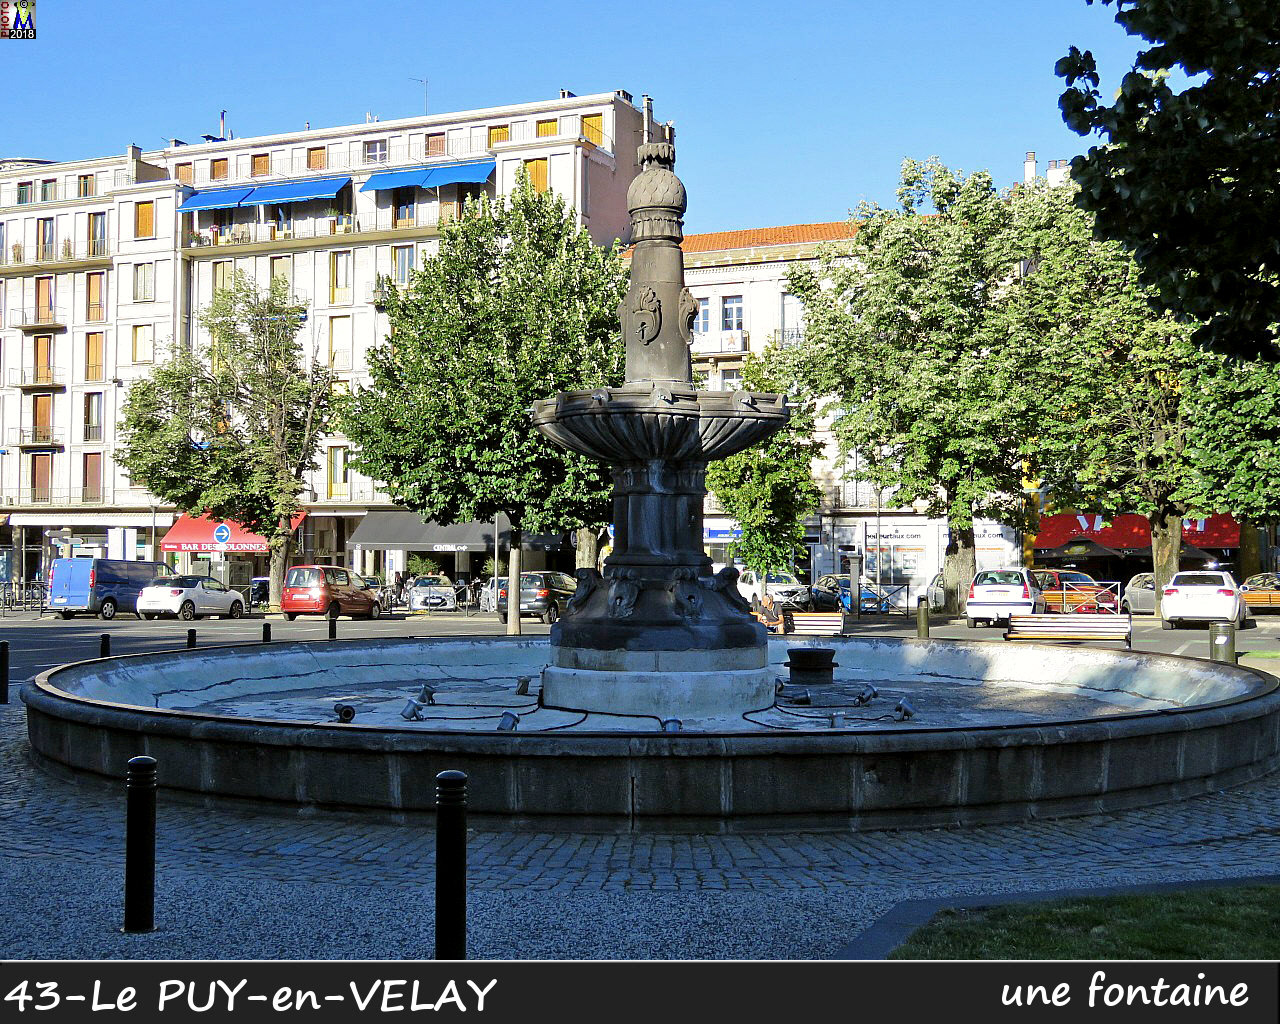 43PUY-EN-VELAY_fontaine_110.jpg